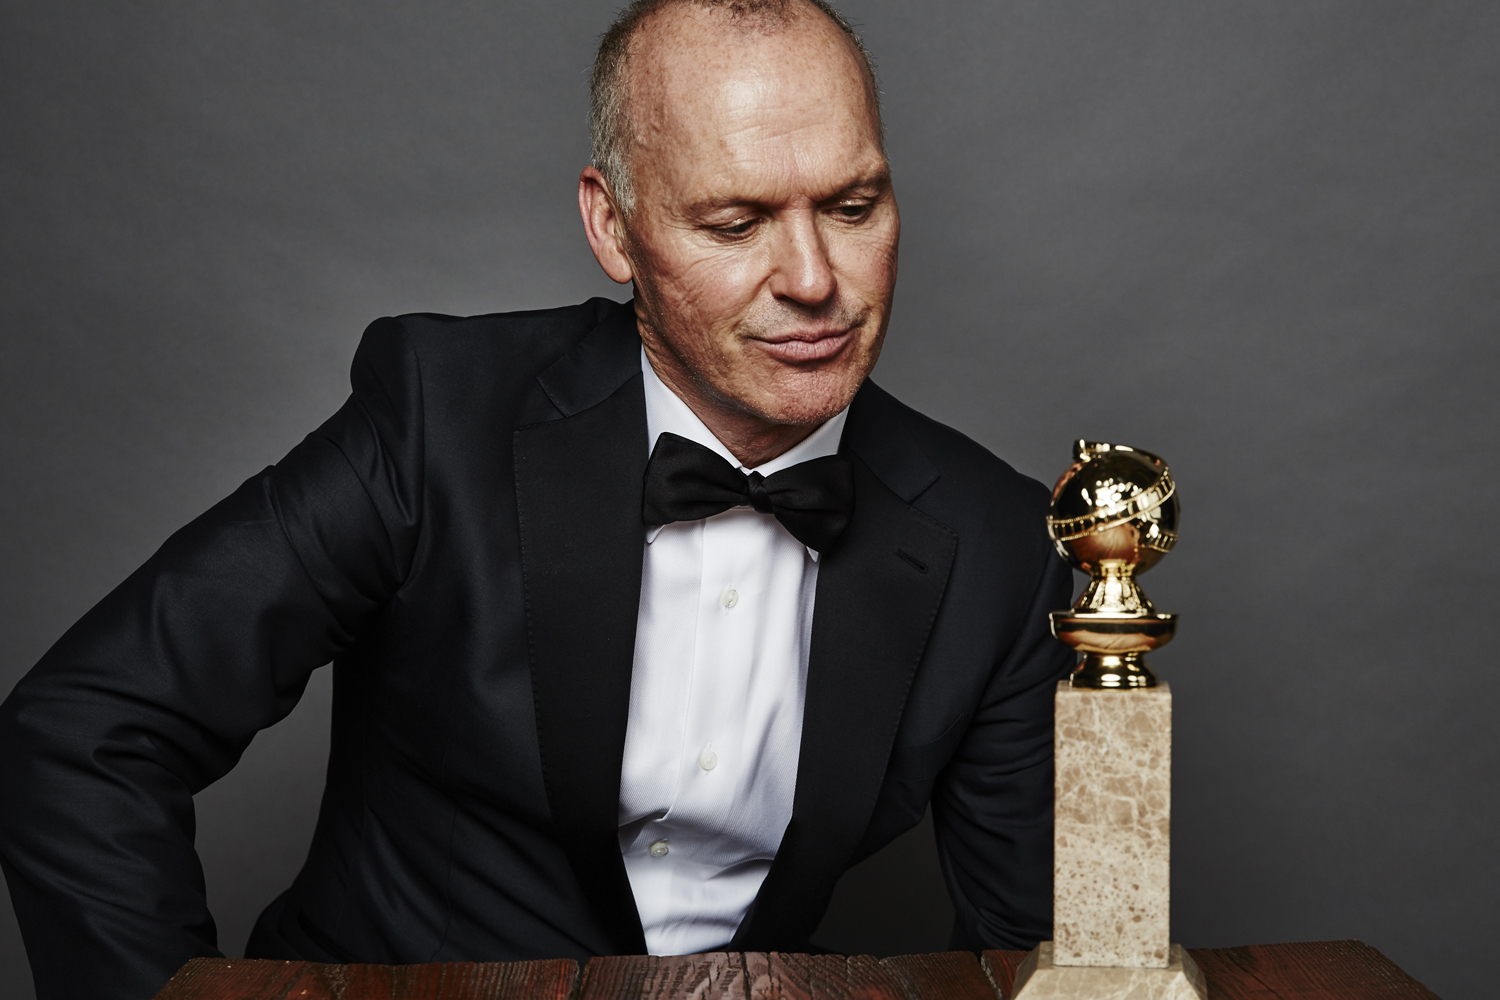 Michael Keaton poses for a portrait during the 72nd Annual Golden Globe Awards on Jan. 11, 2015, in Beverly Hills, Calif.